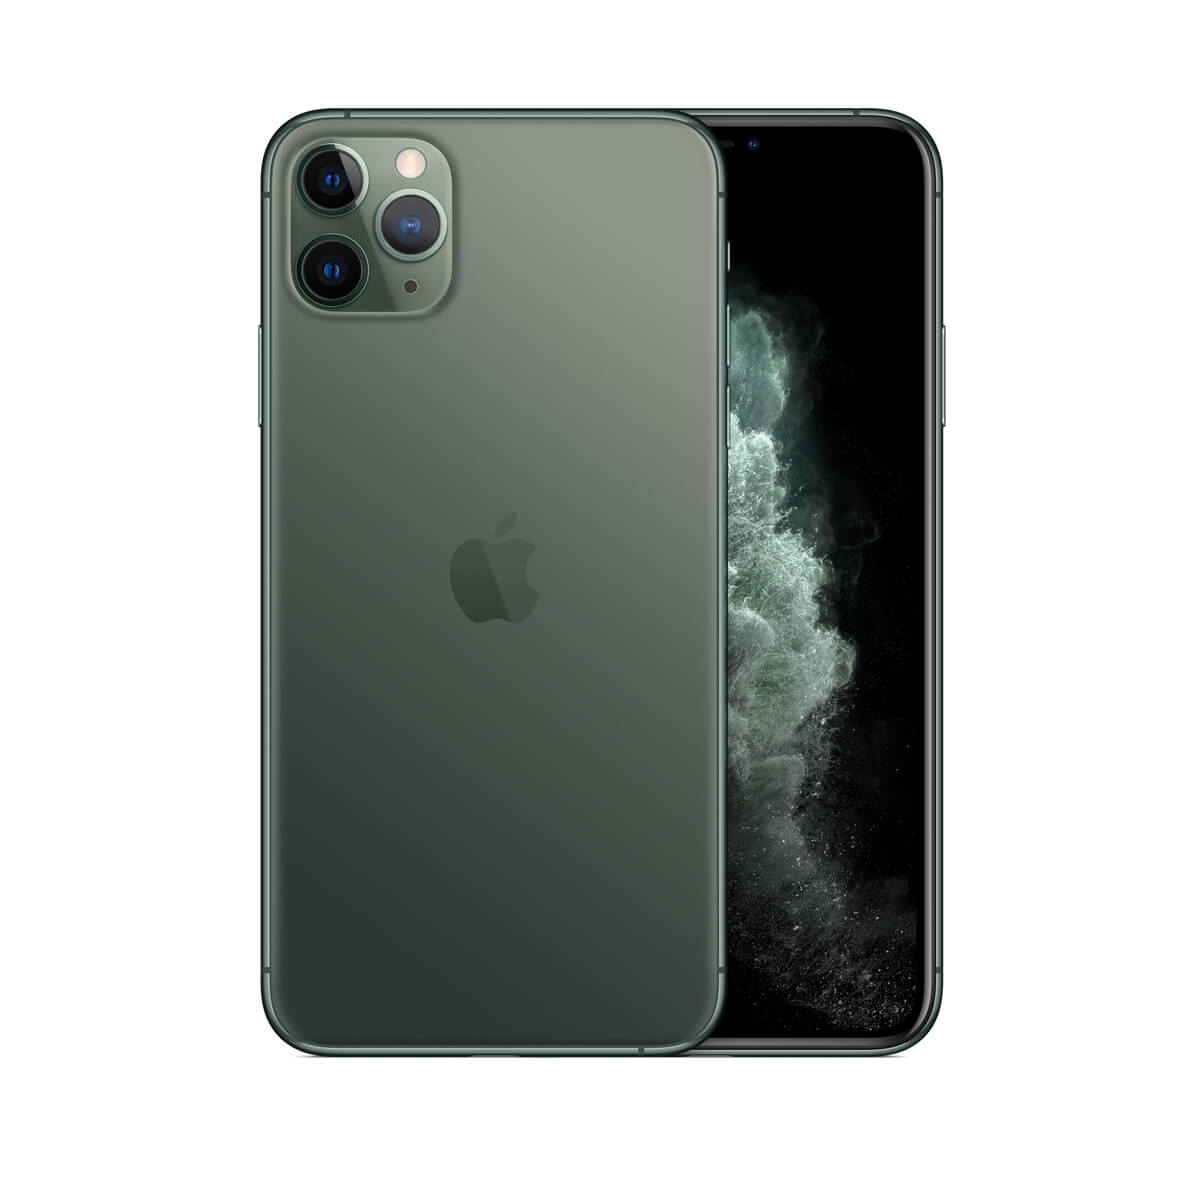 Apple iPhone 11 Pro Max (64G) [銀/綠]